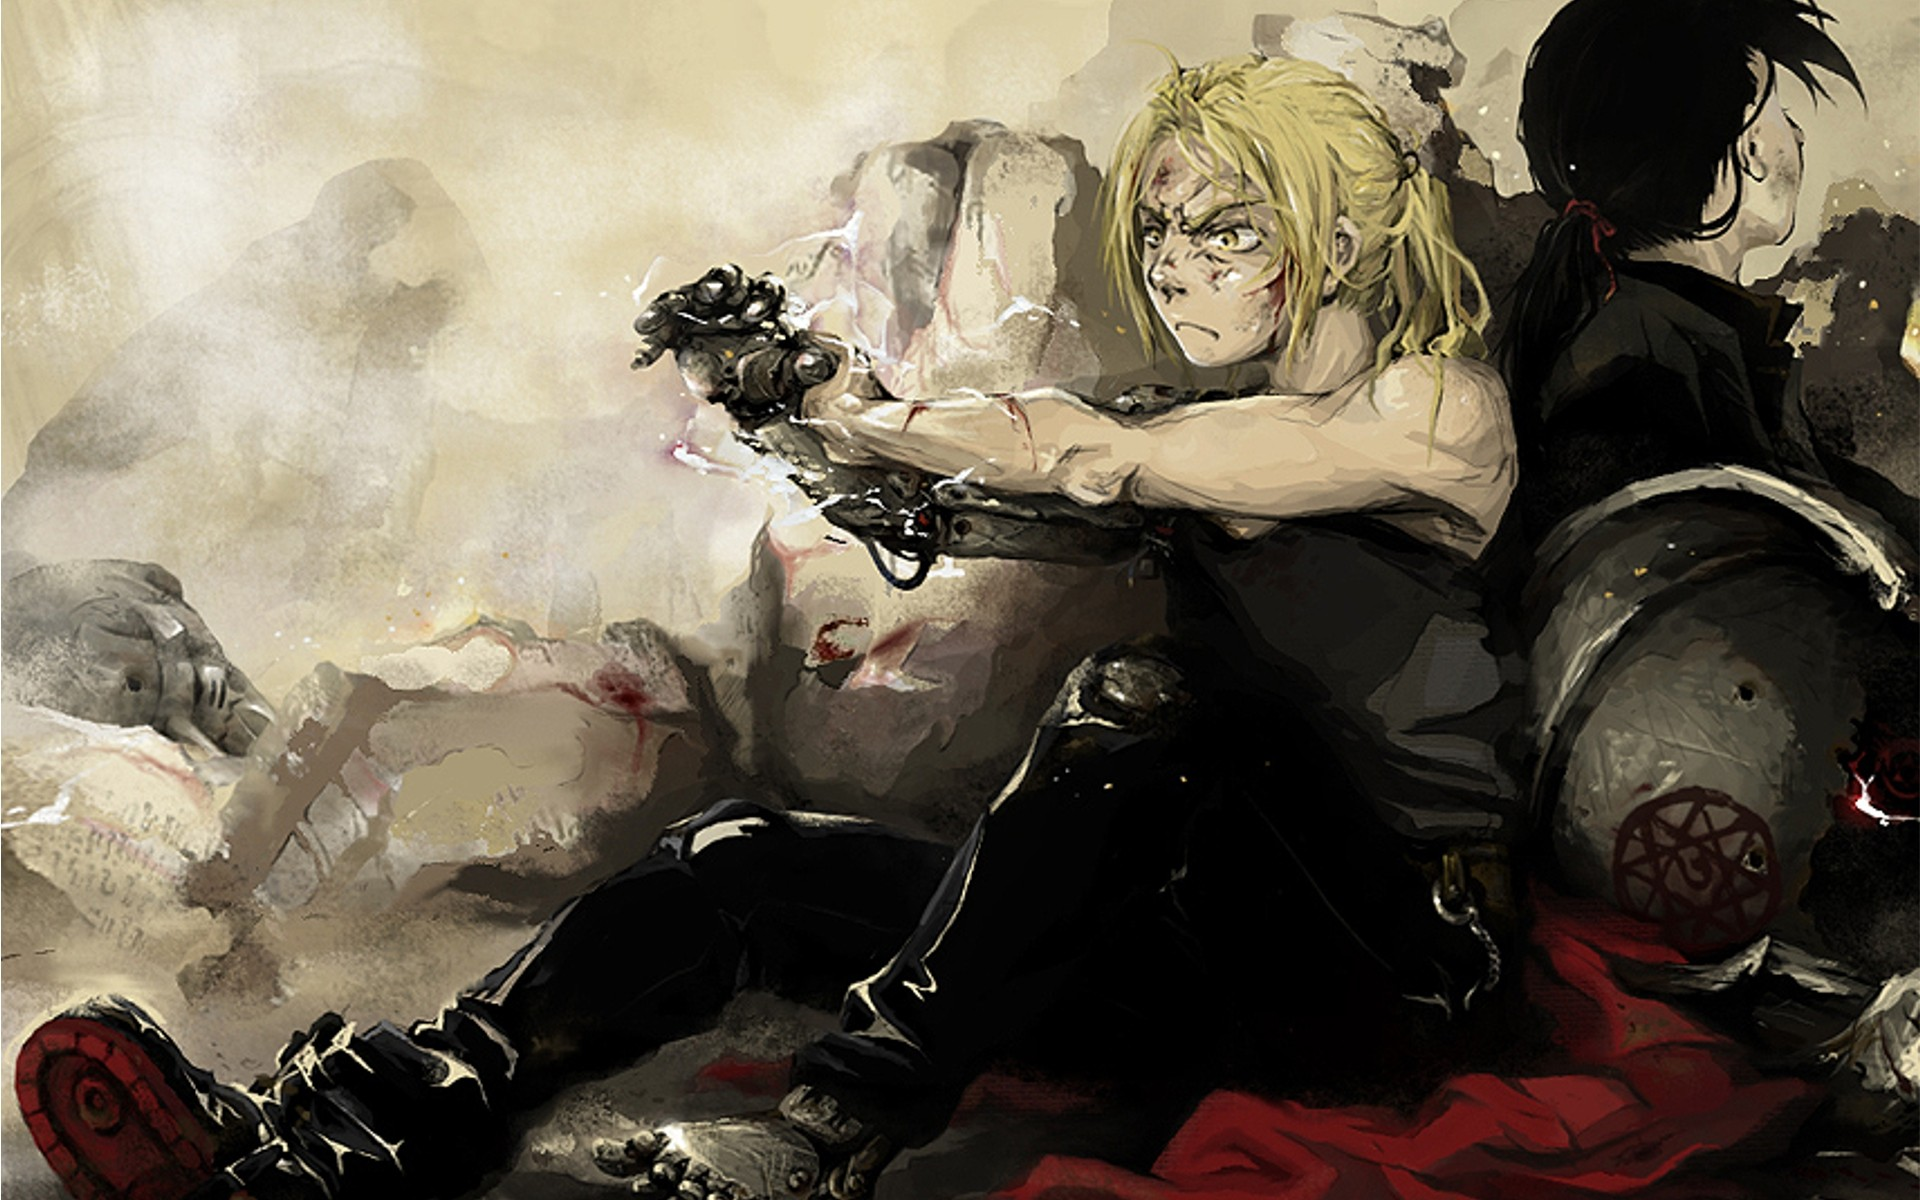 Download Edward Elric Wallpaper 1920x1200 Wallpoper 260406 1920x1200